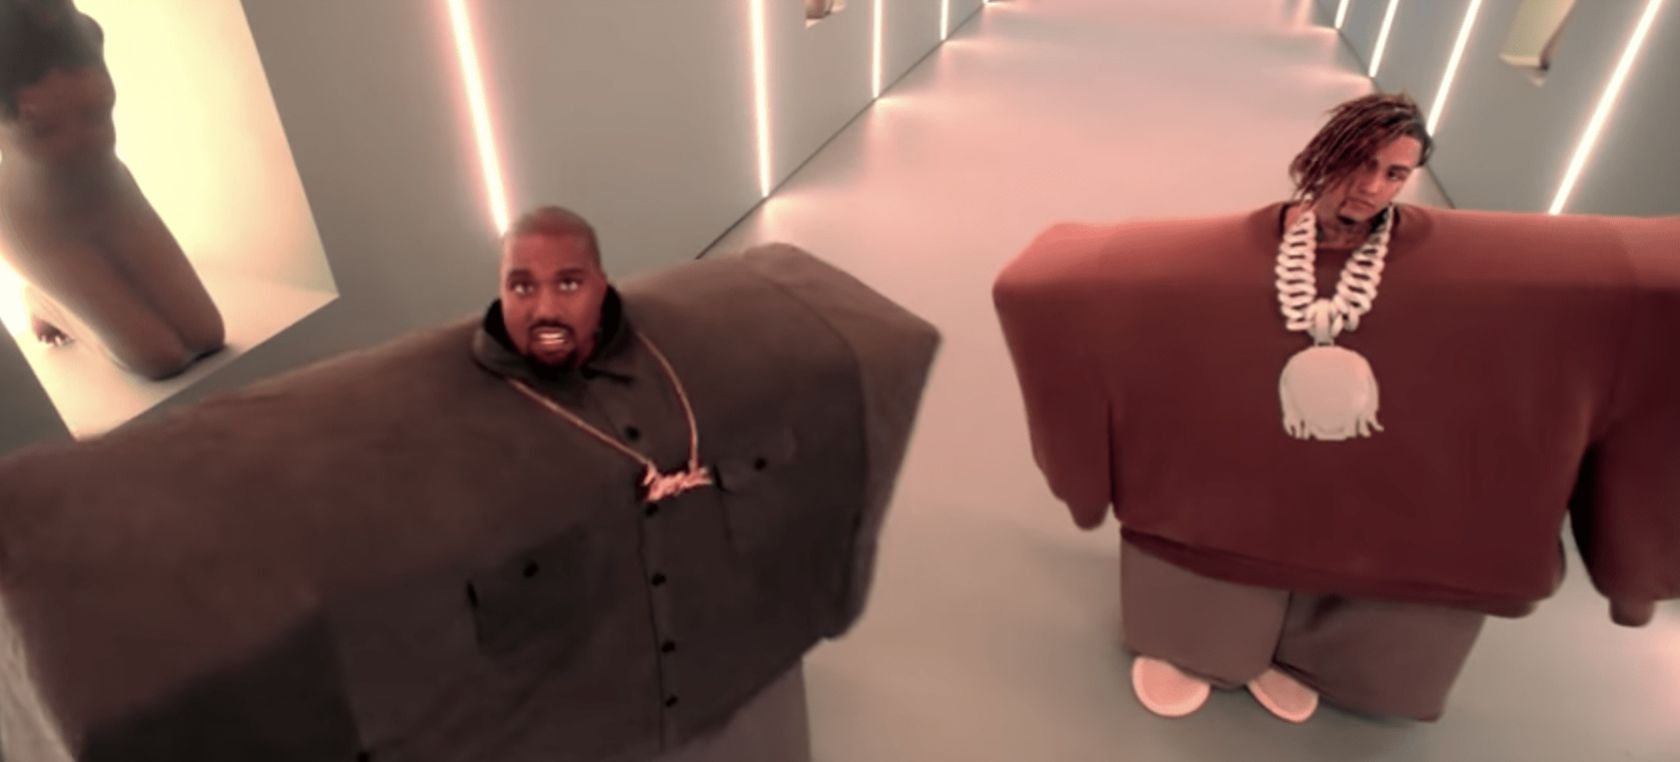 KANYE WEST VUELVE A LOGRARLO CON I LOVE IT Con Lil Pump y Adele Givens